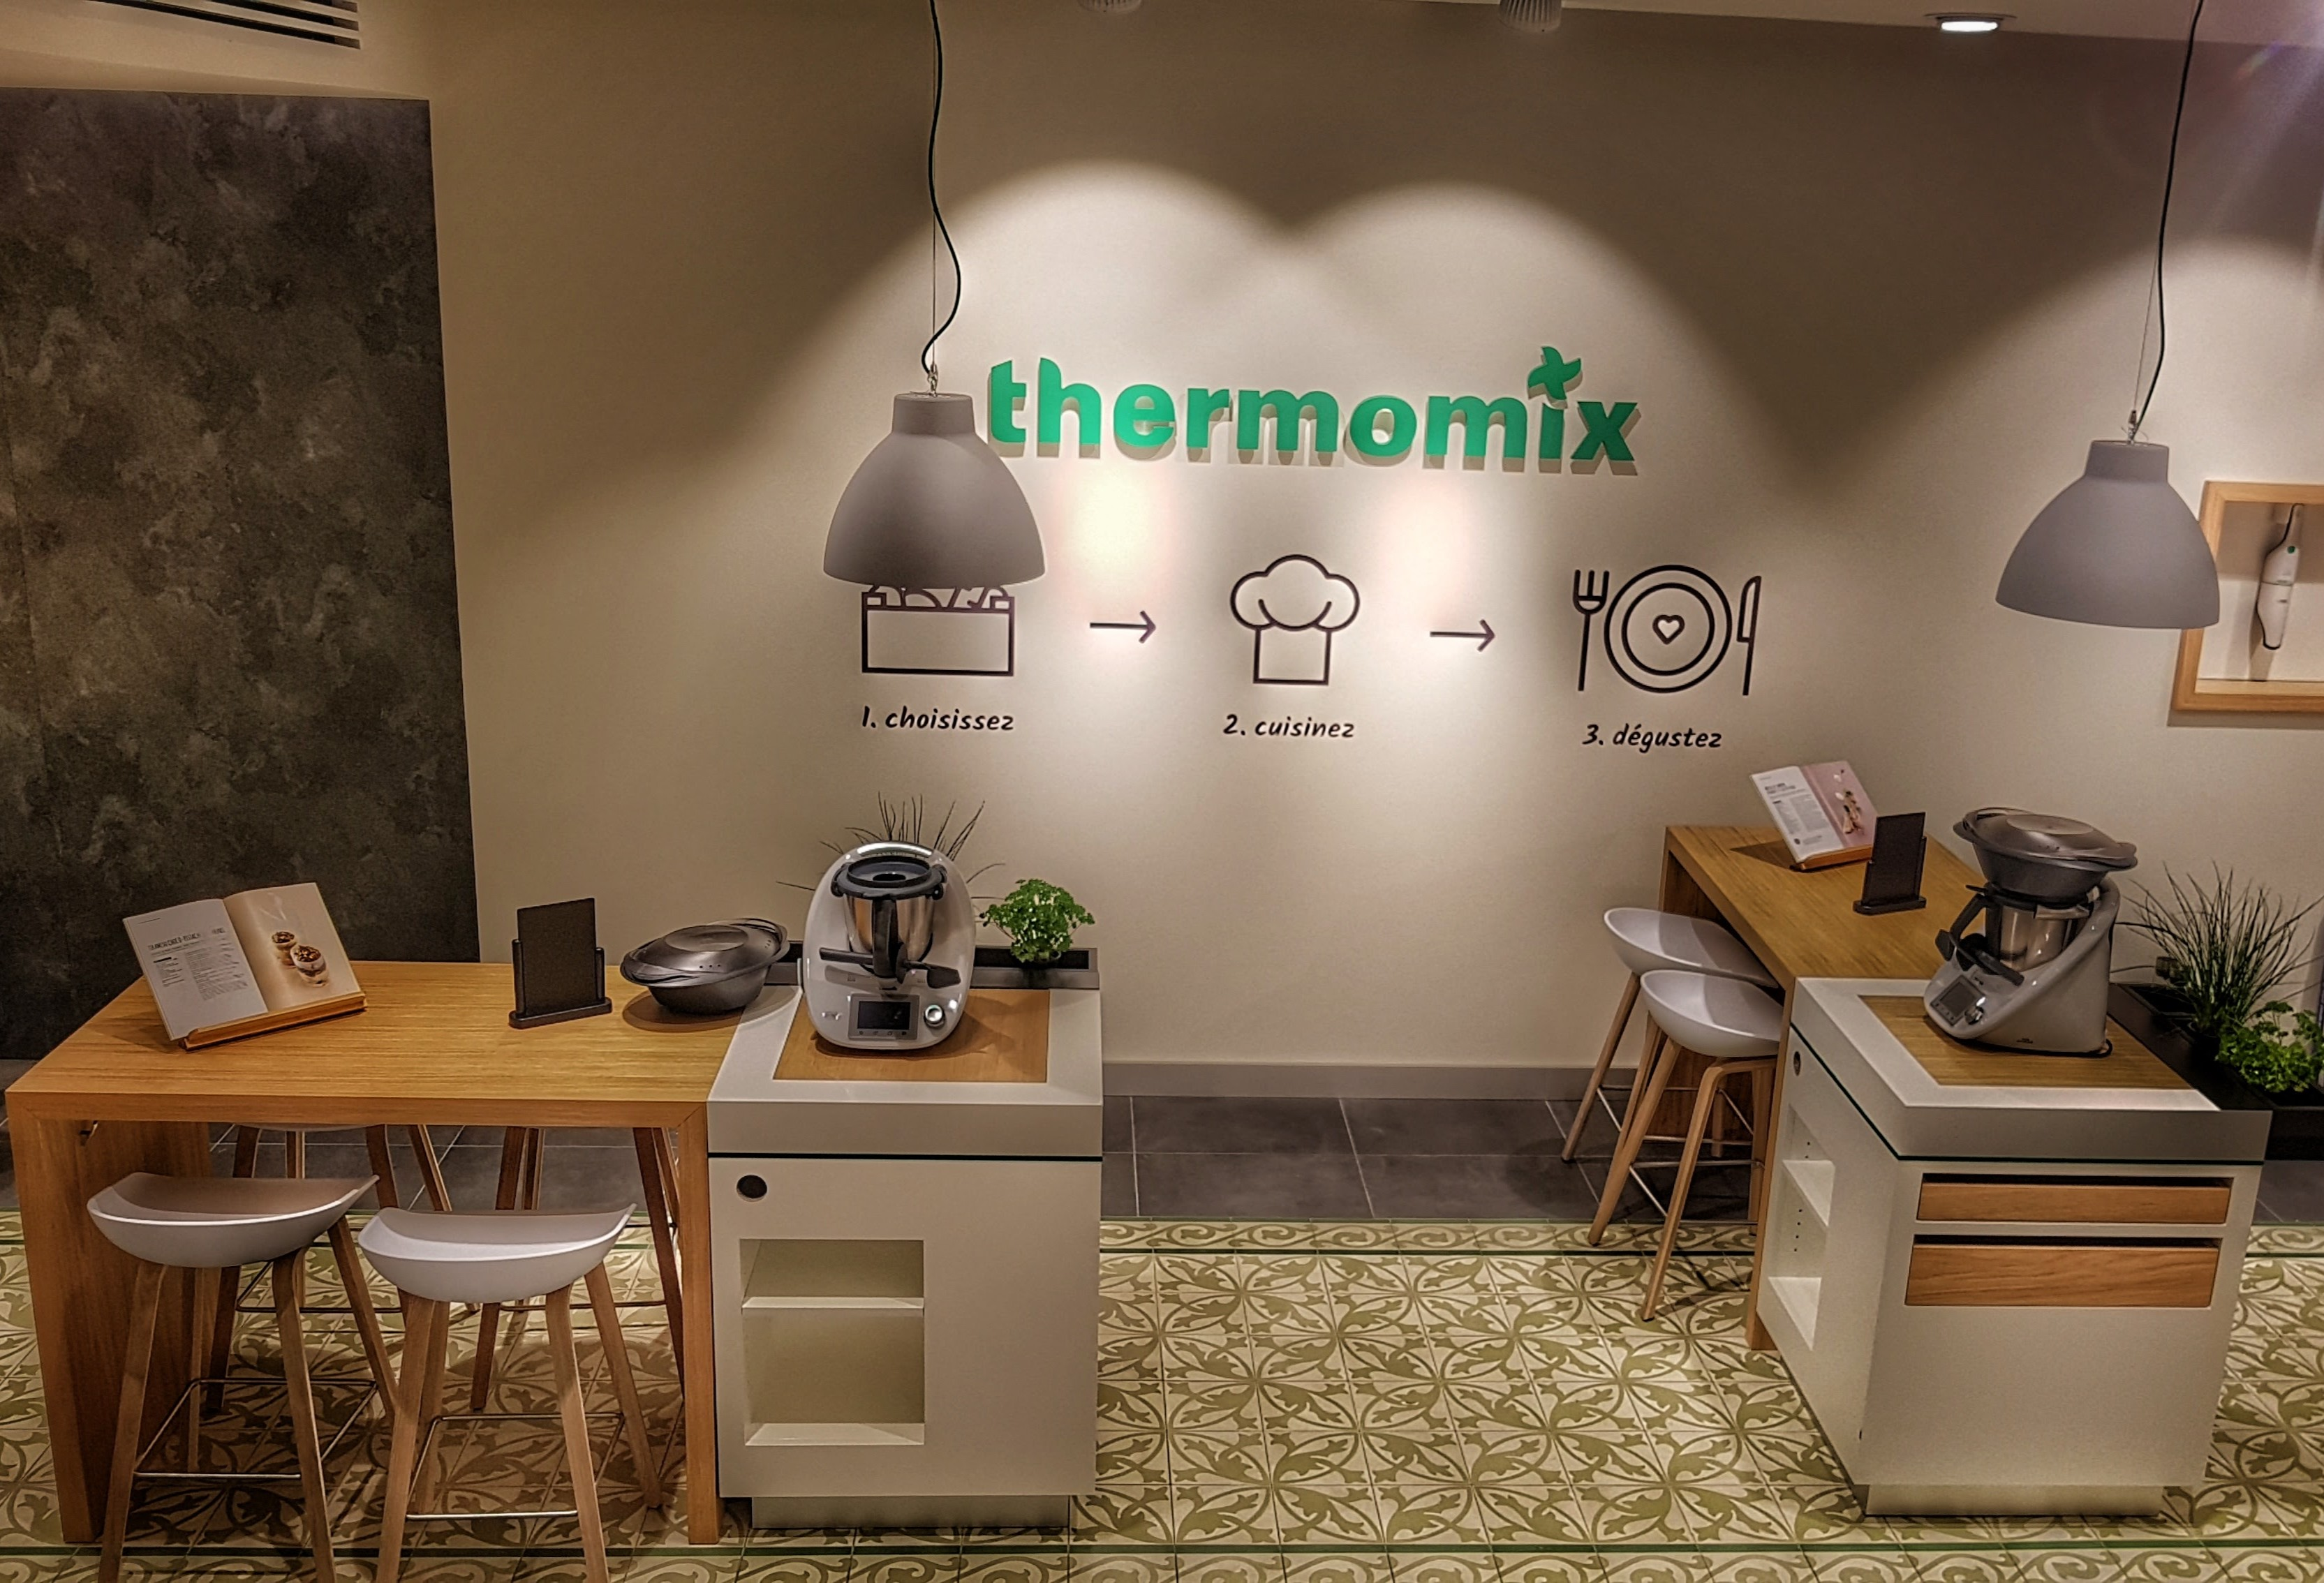 acheter un thermomix en boutique c est d sormais. Black Bedroom Furniture Sets. Home Design Ideas